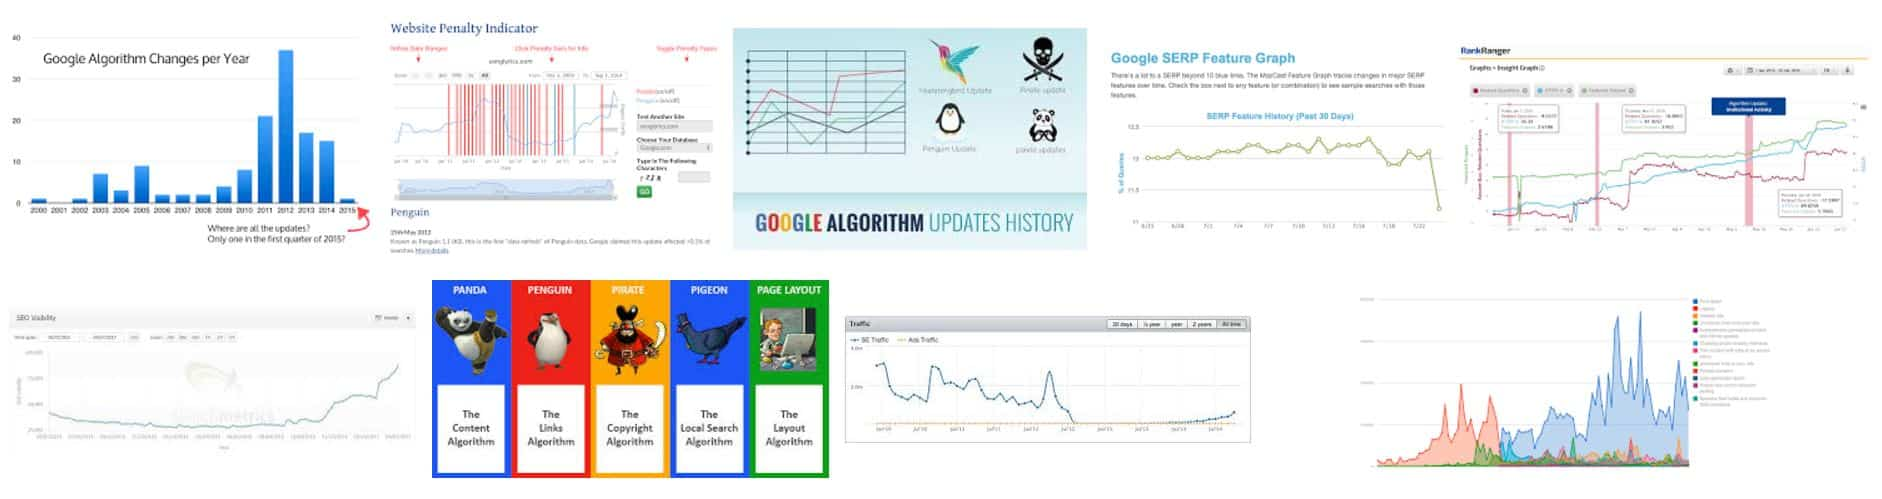 Google Algorithm Update for June 25th, 2017